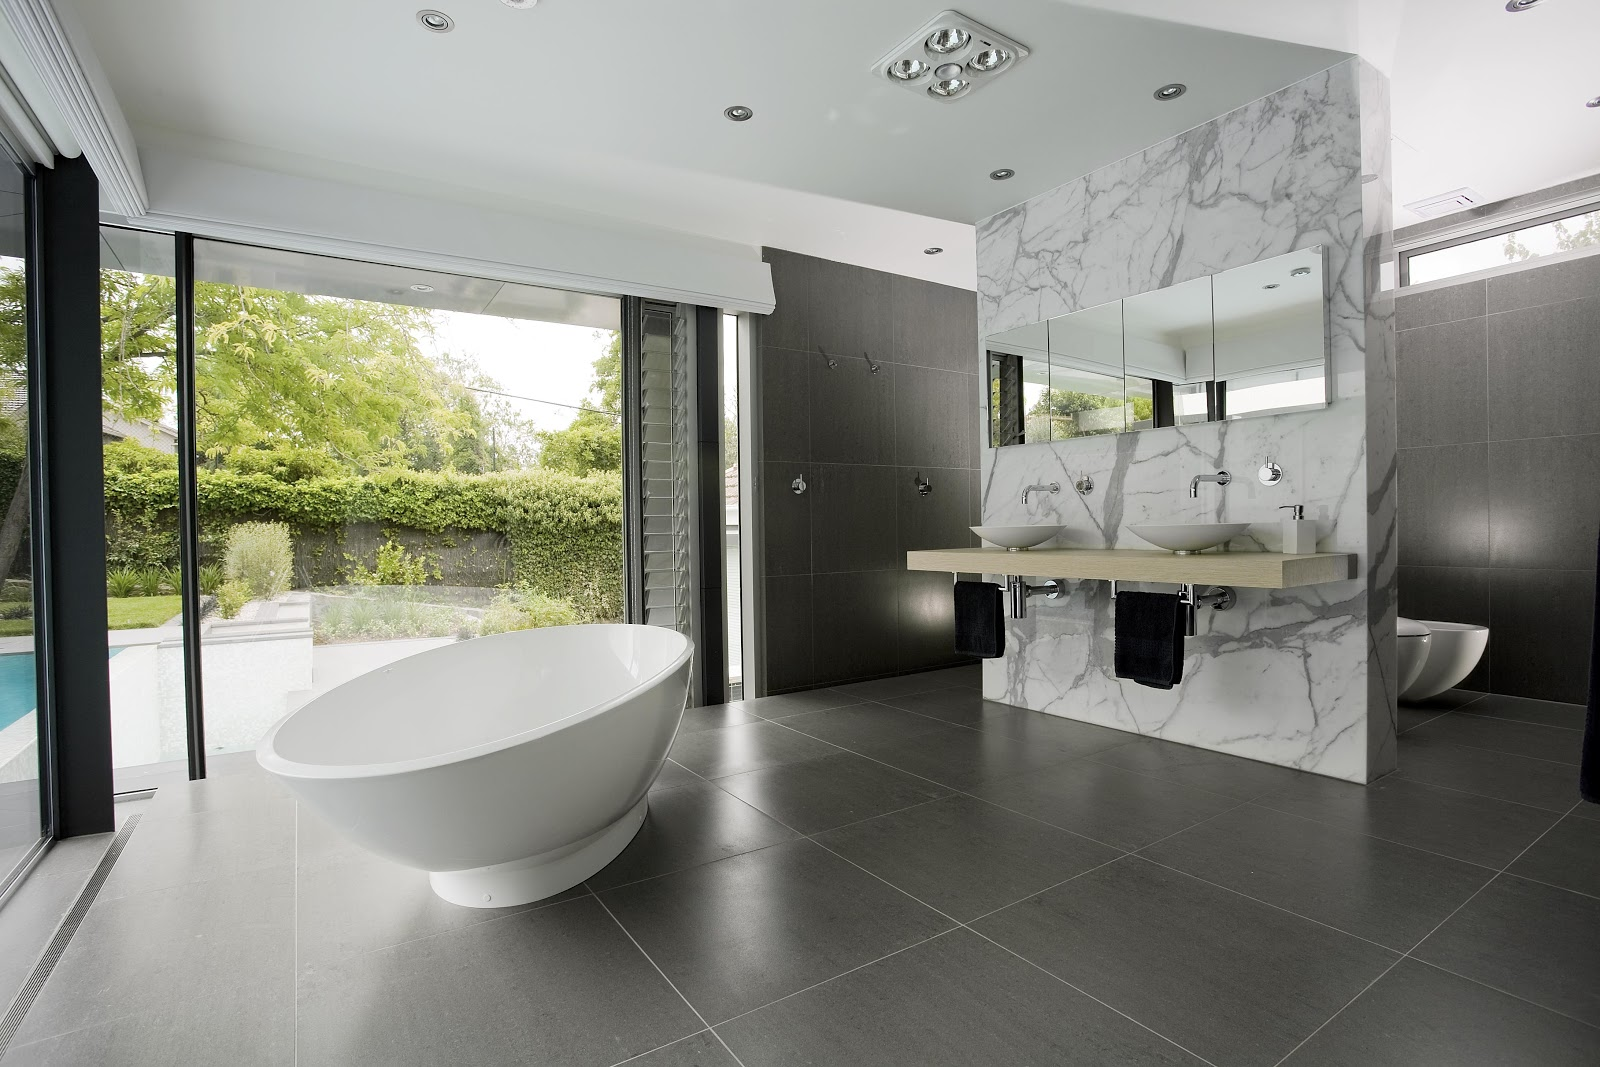 Minosa modern bathrooms the search for something different for Modern bathroom design ideas